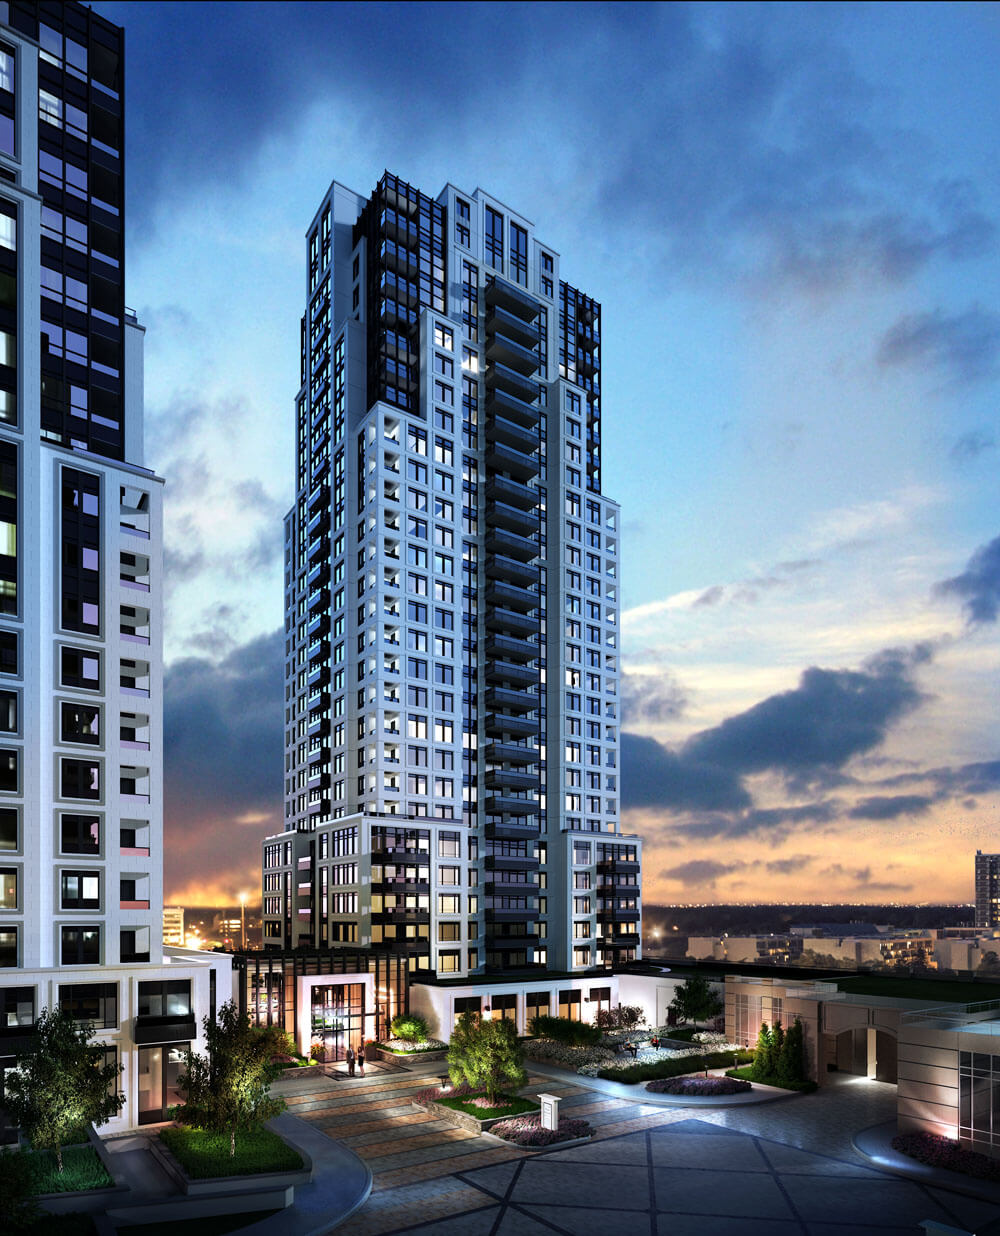 Evermore in the West Village by Tridel Group - Winner of the 2019 OHBA Builder of the Year Award